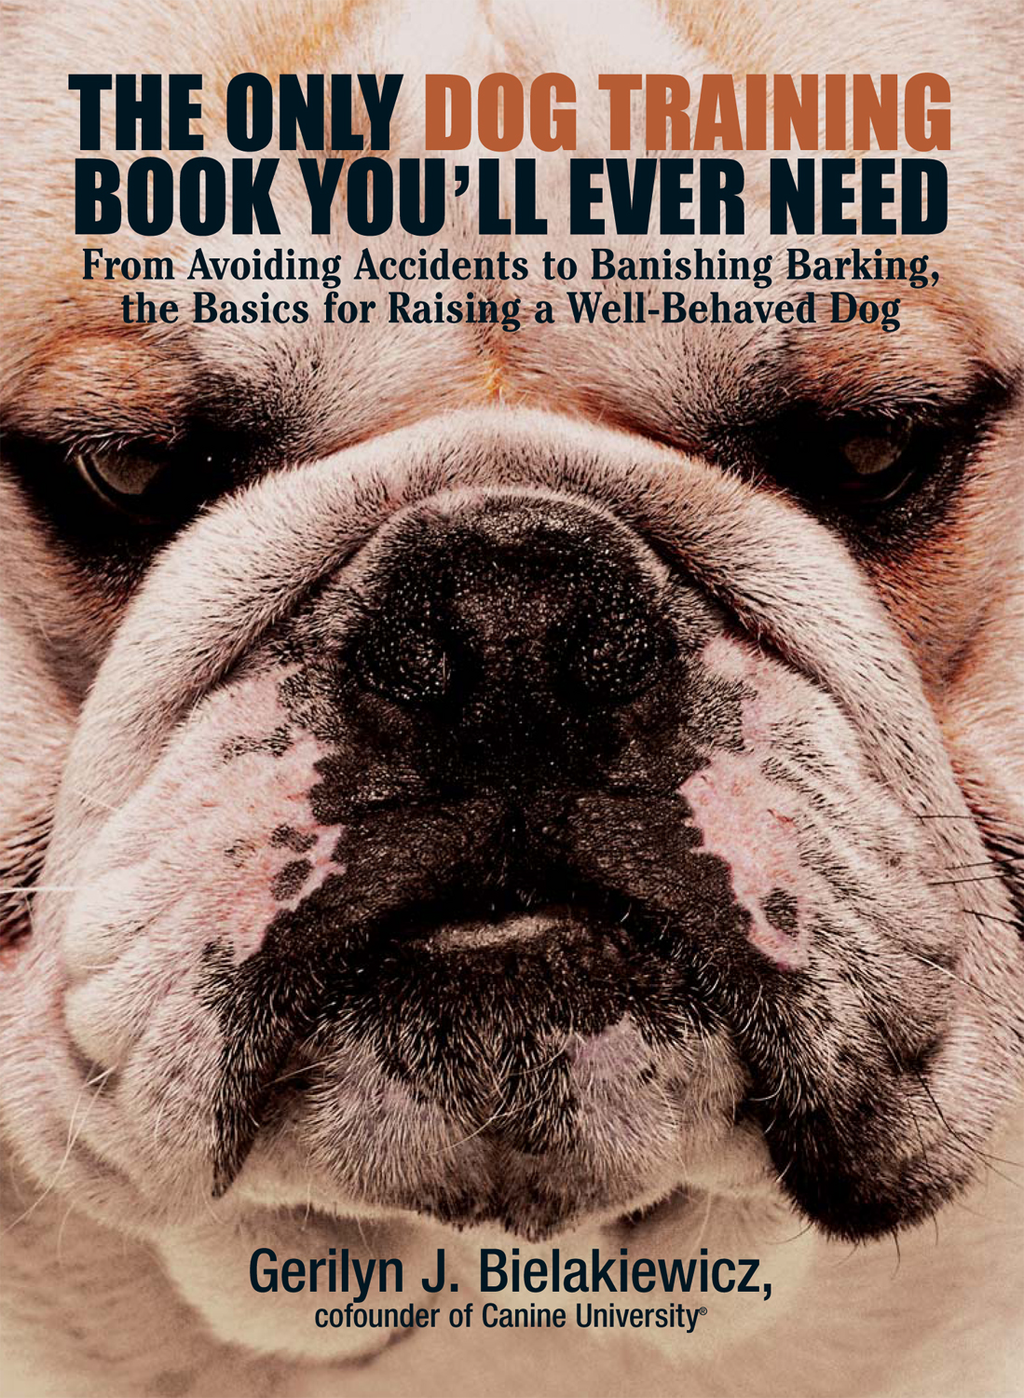 The Only Dog Training Book You Will Ever Need: From Avoiding Accidents to Banishing Barking, the Basics for Raising a Well-Behaved Dog